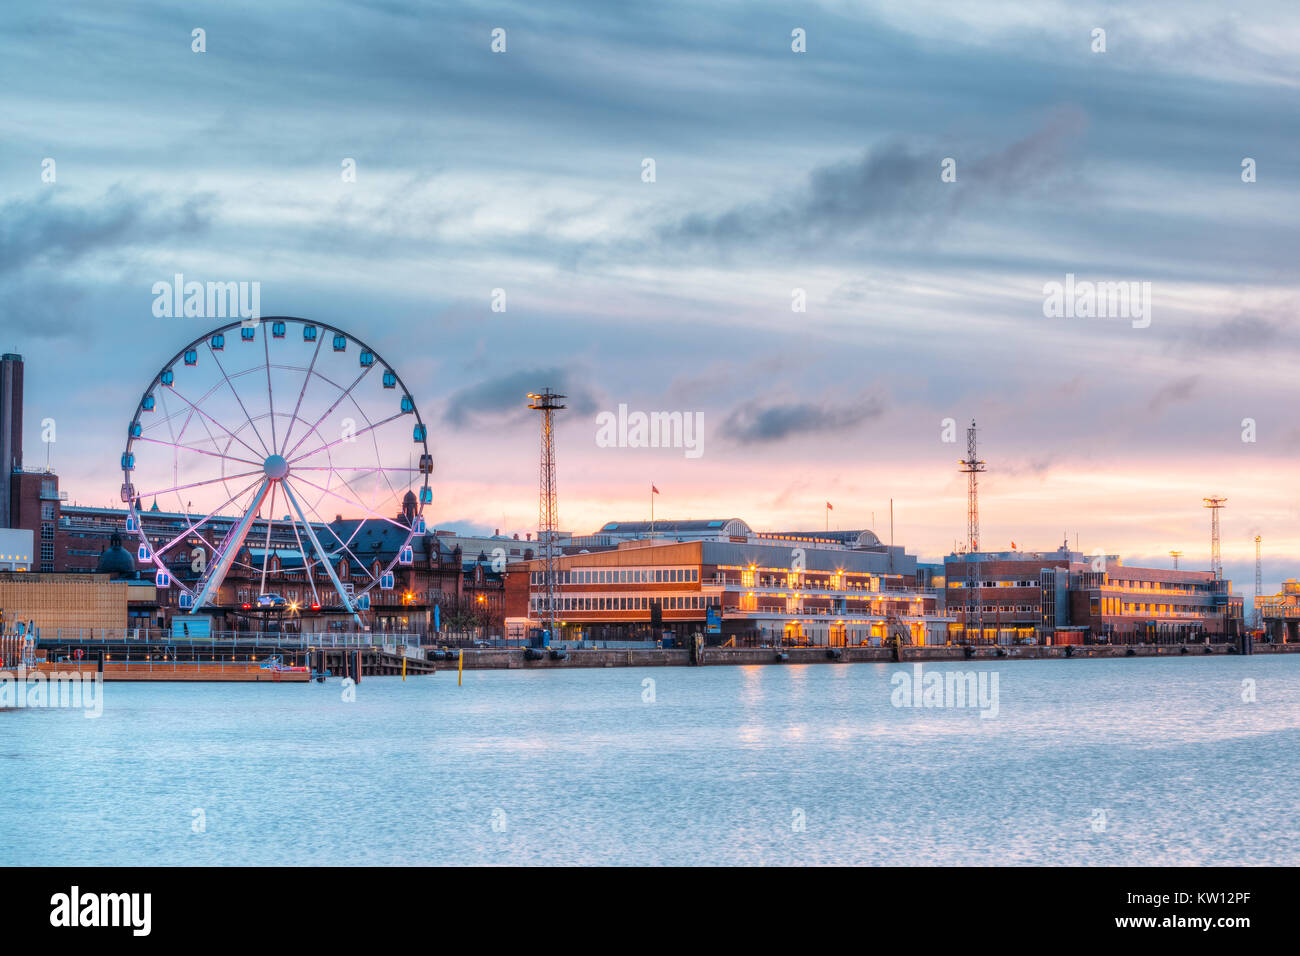 Helsinki, Finland. View Of Embankment With Ferris Wheel In Evening Night Illuminations. - Stock Image